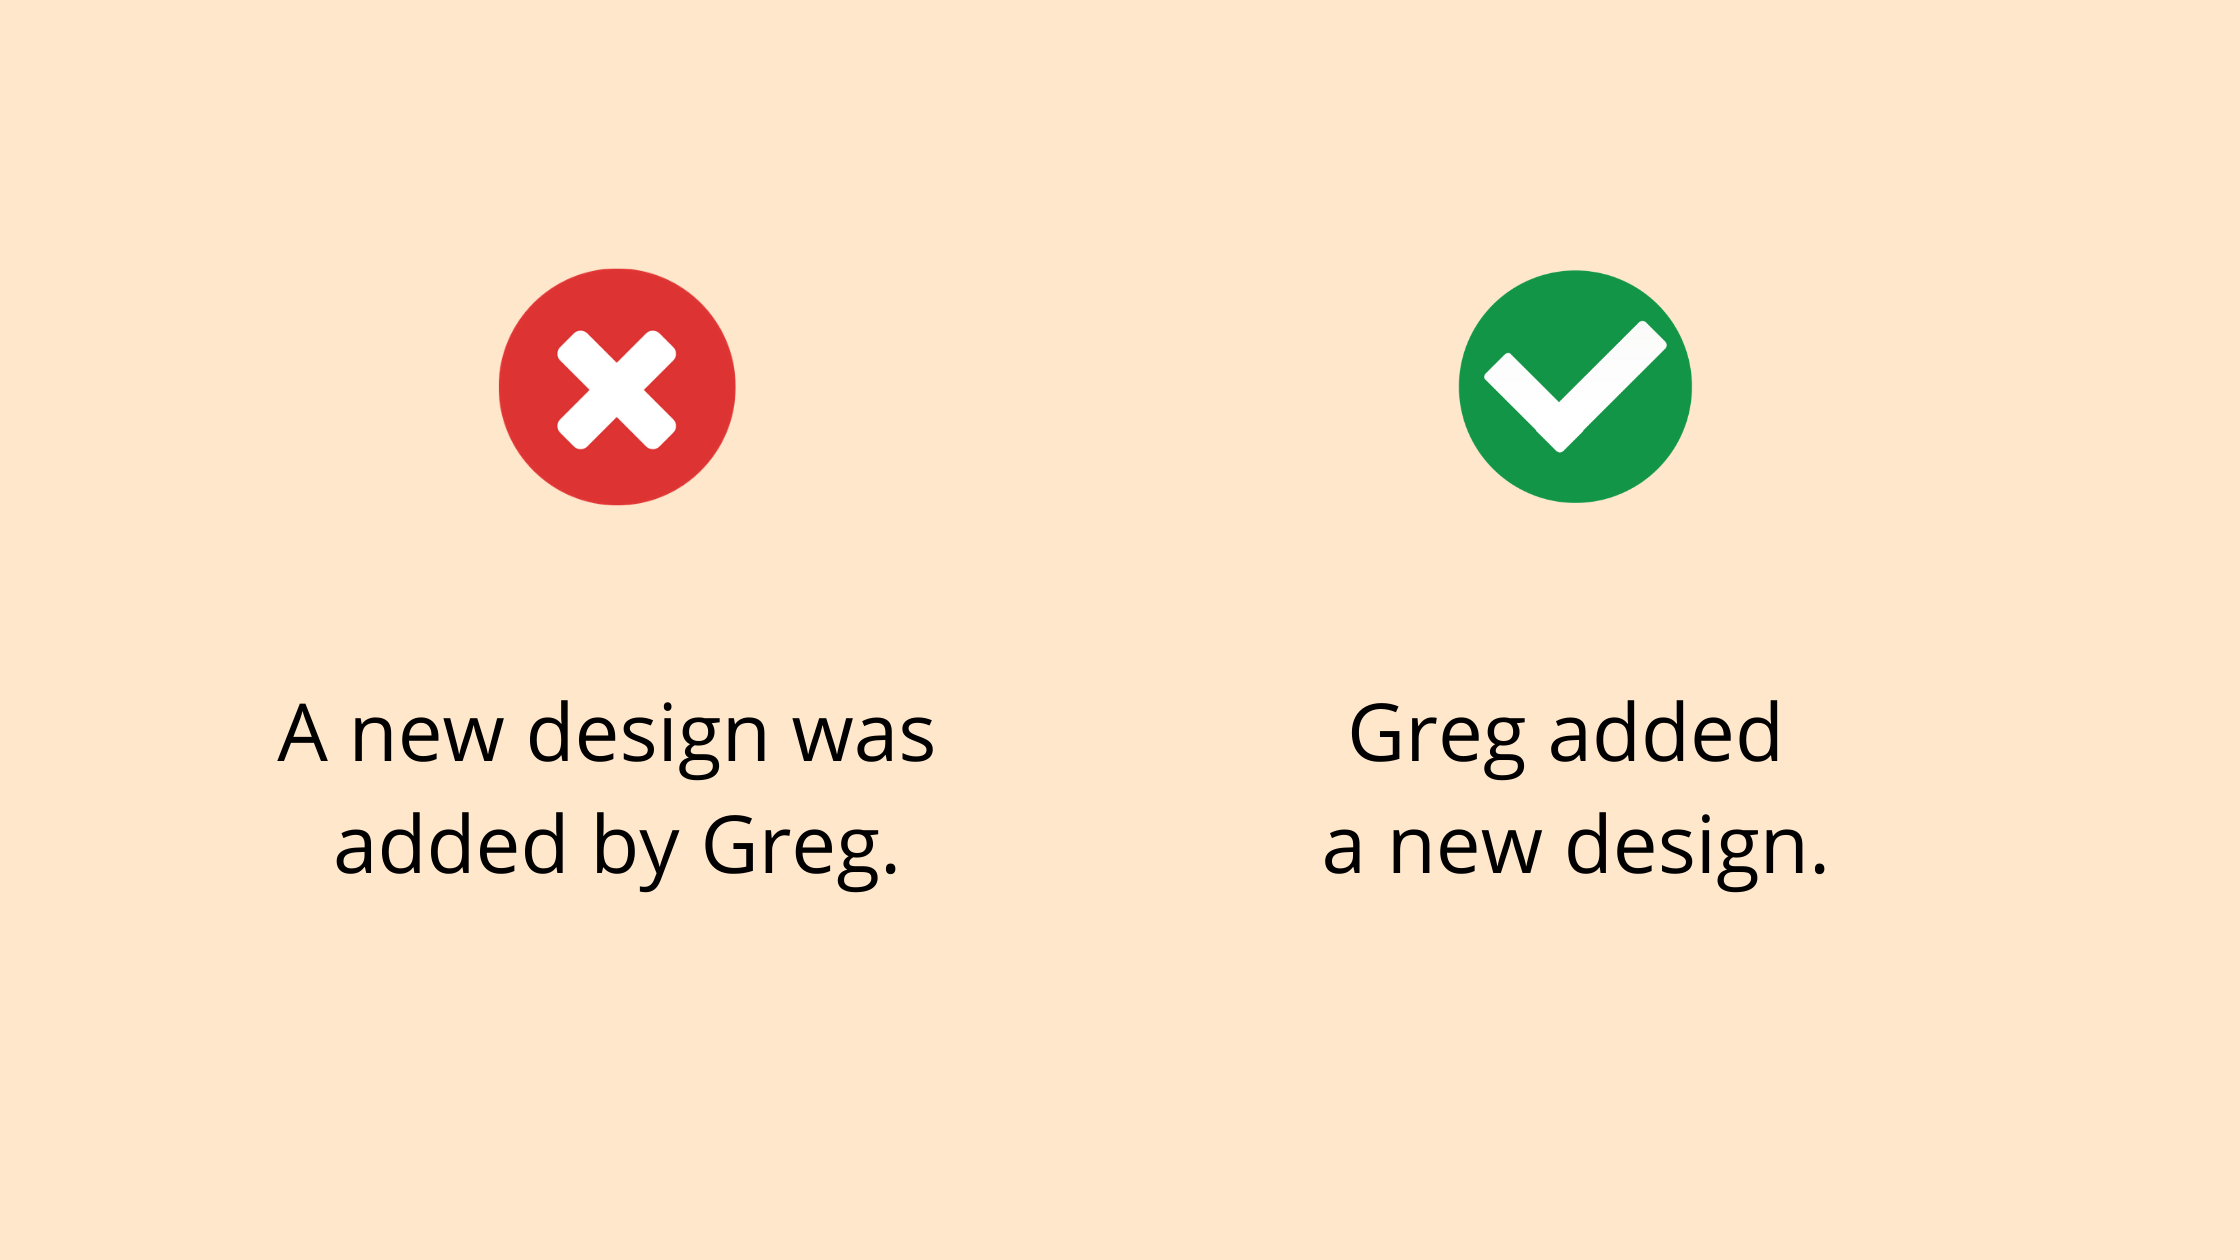 A new design was added by Greg, vs Greg added a new design